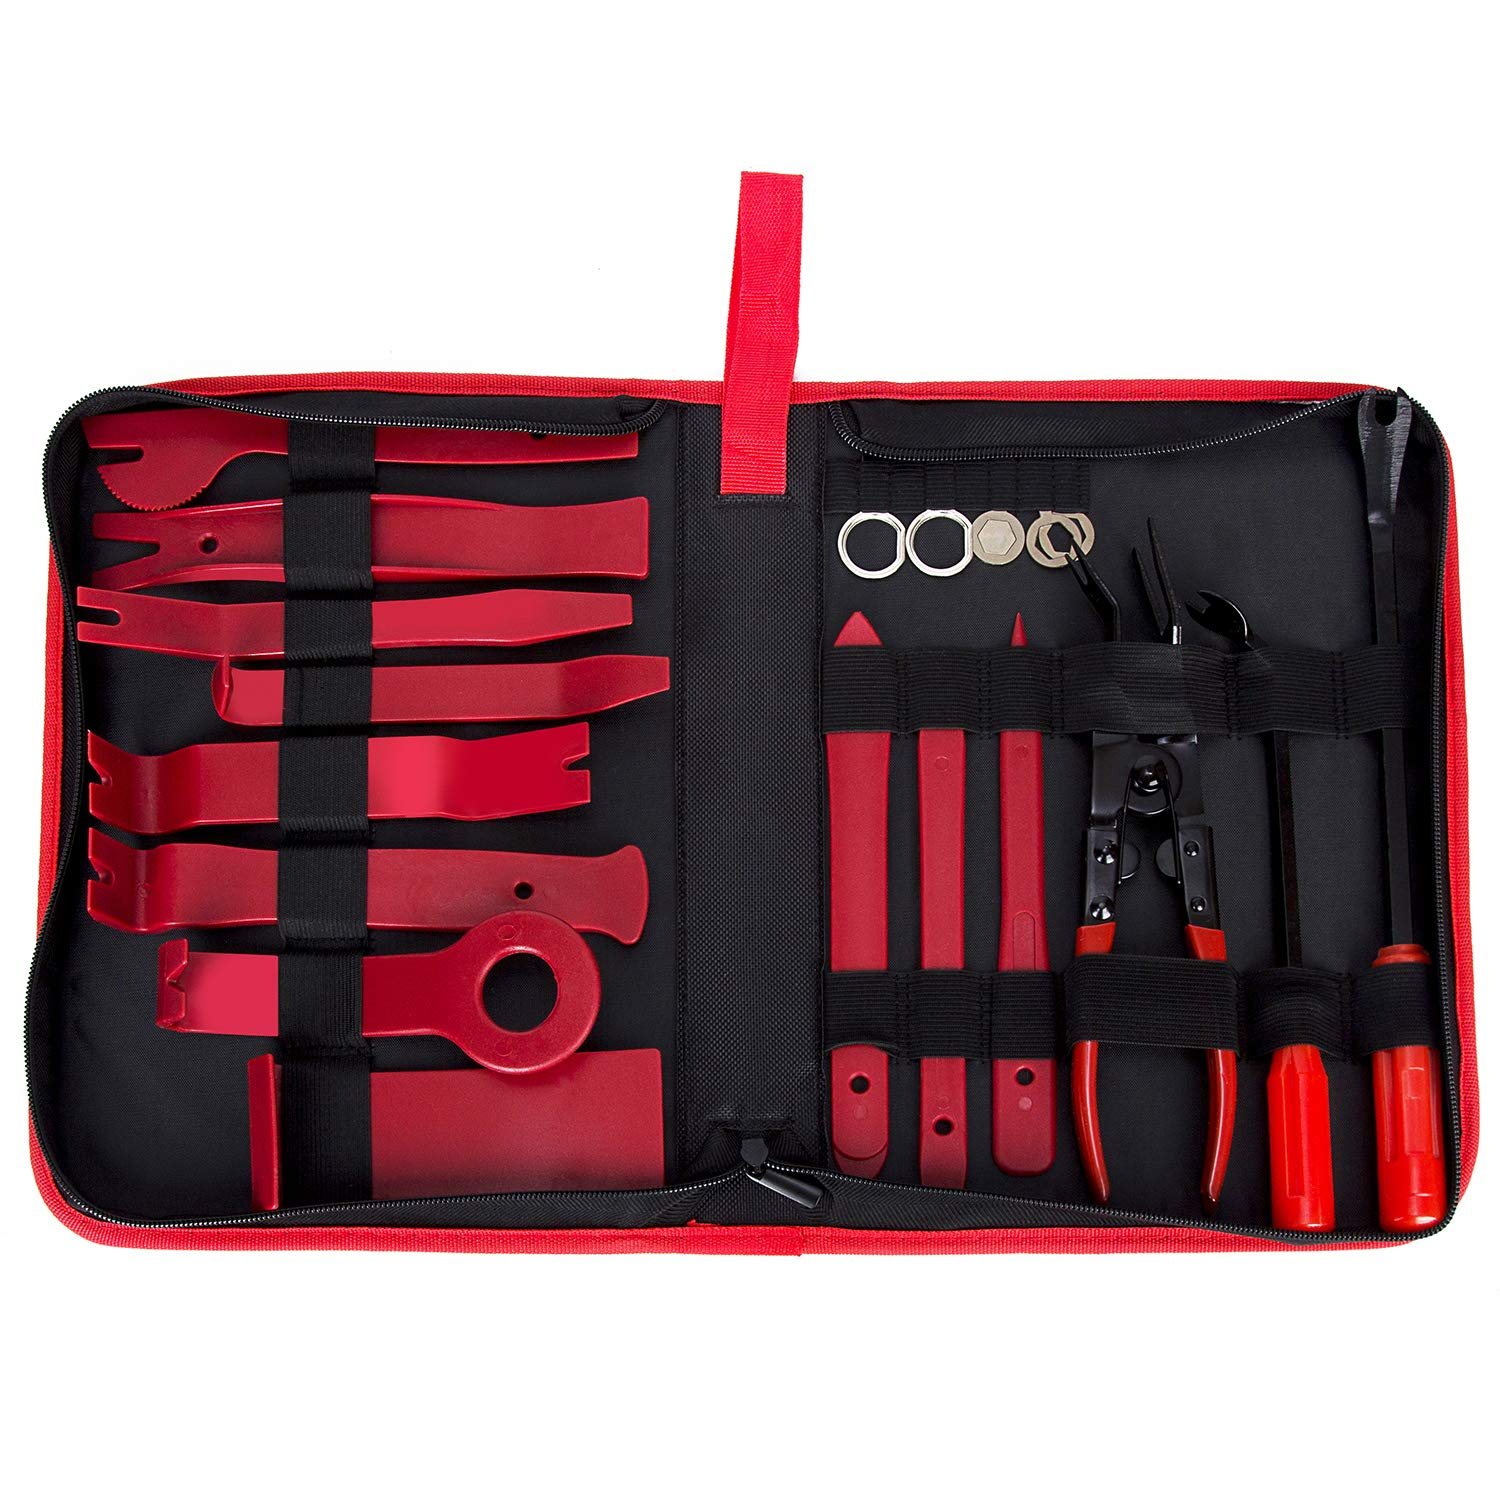 TLEEP 19 Pieces Car Panel Removal Tools Kit, Auto Trim Door Panel Window Molding Upholstery Fastener Retainer Clip Tool, Pliers and Pry Bar Set (Red)